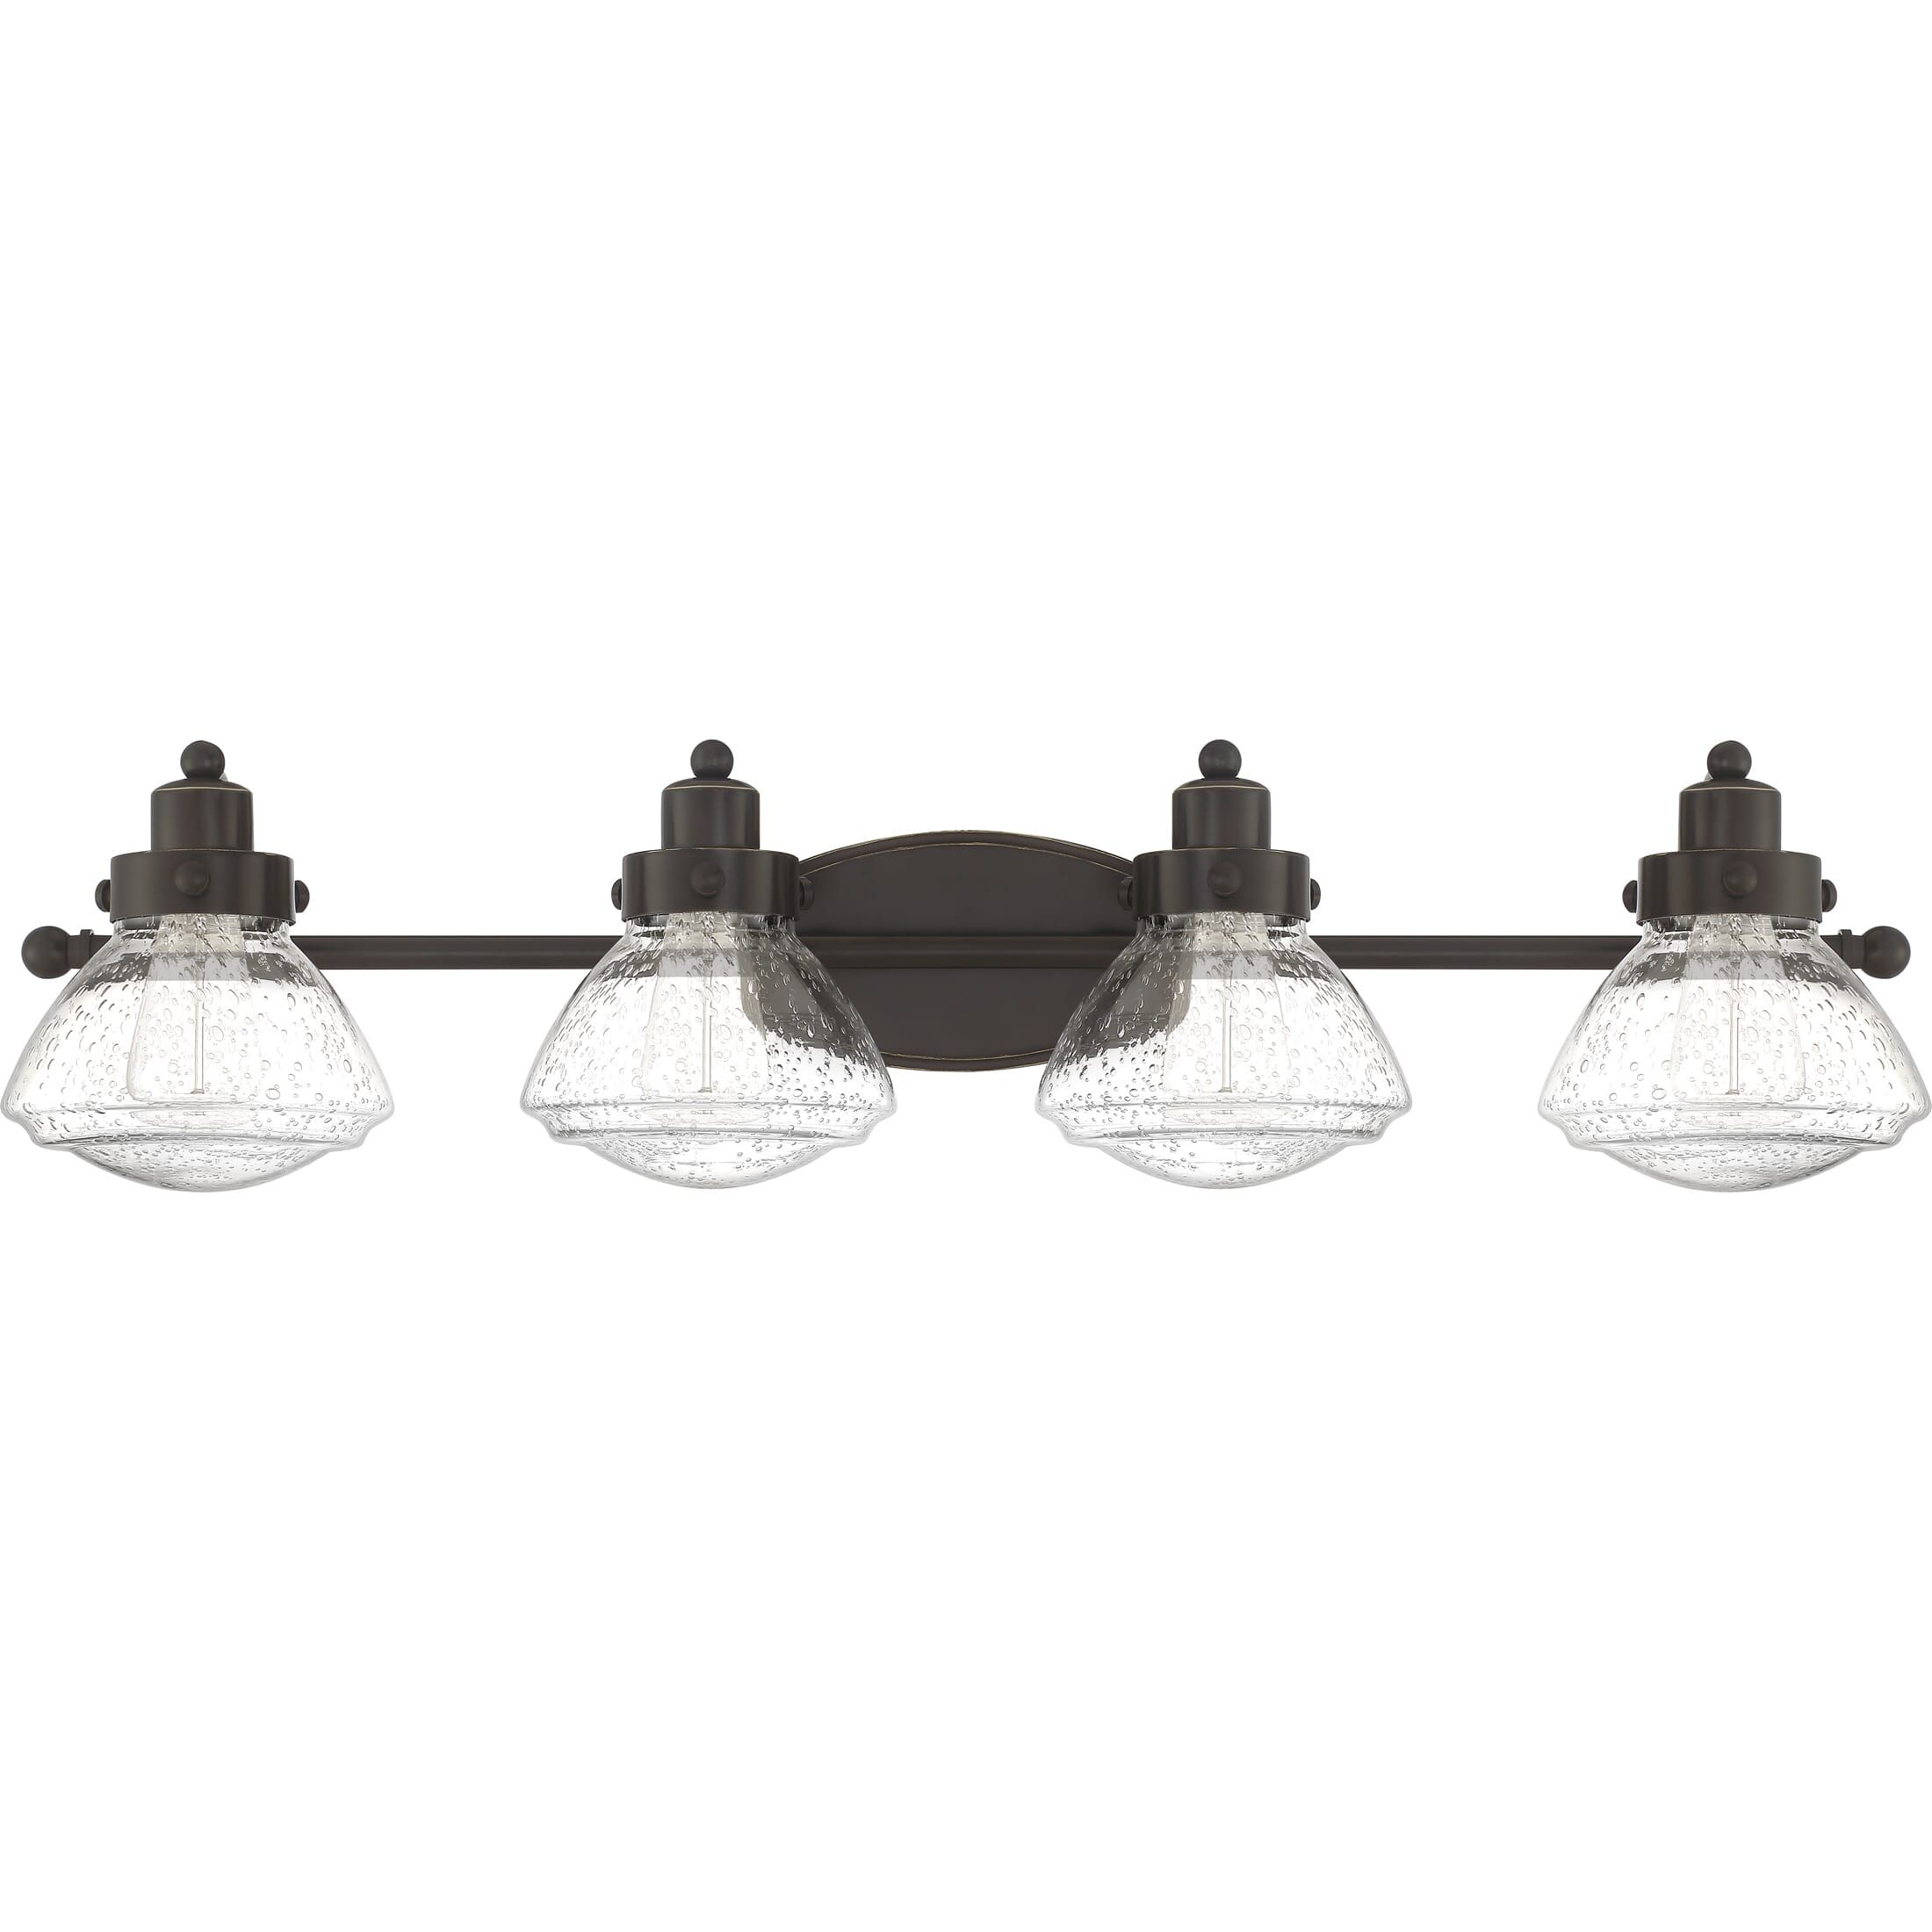 "Photo of Quoizel Scholar 4-Light 8 ""Bathroom Vanity Light in Palladian Bronze"